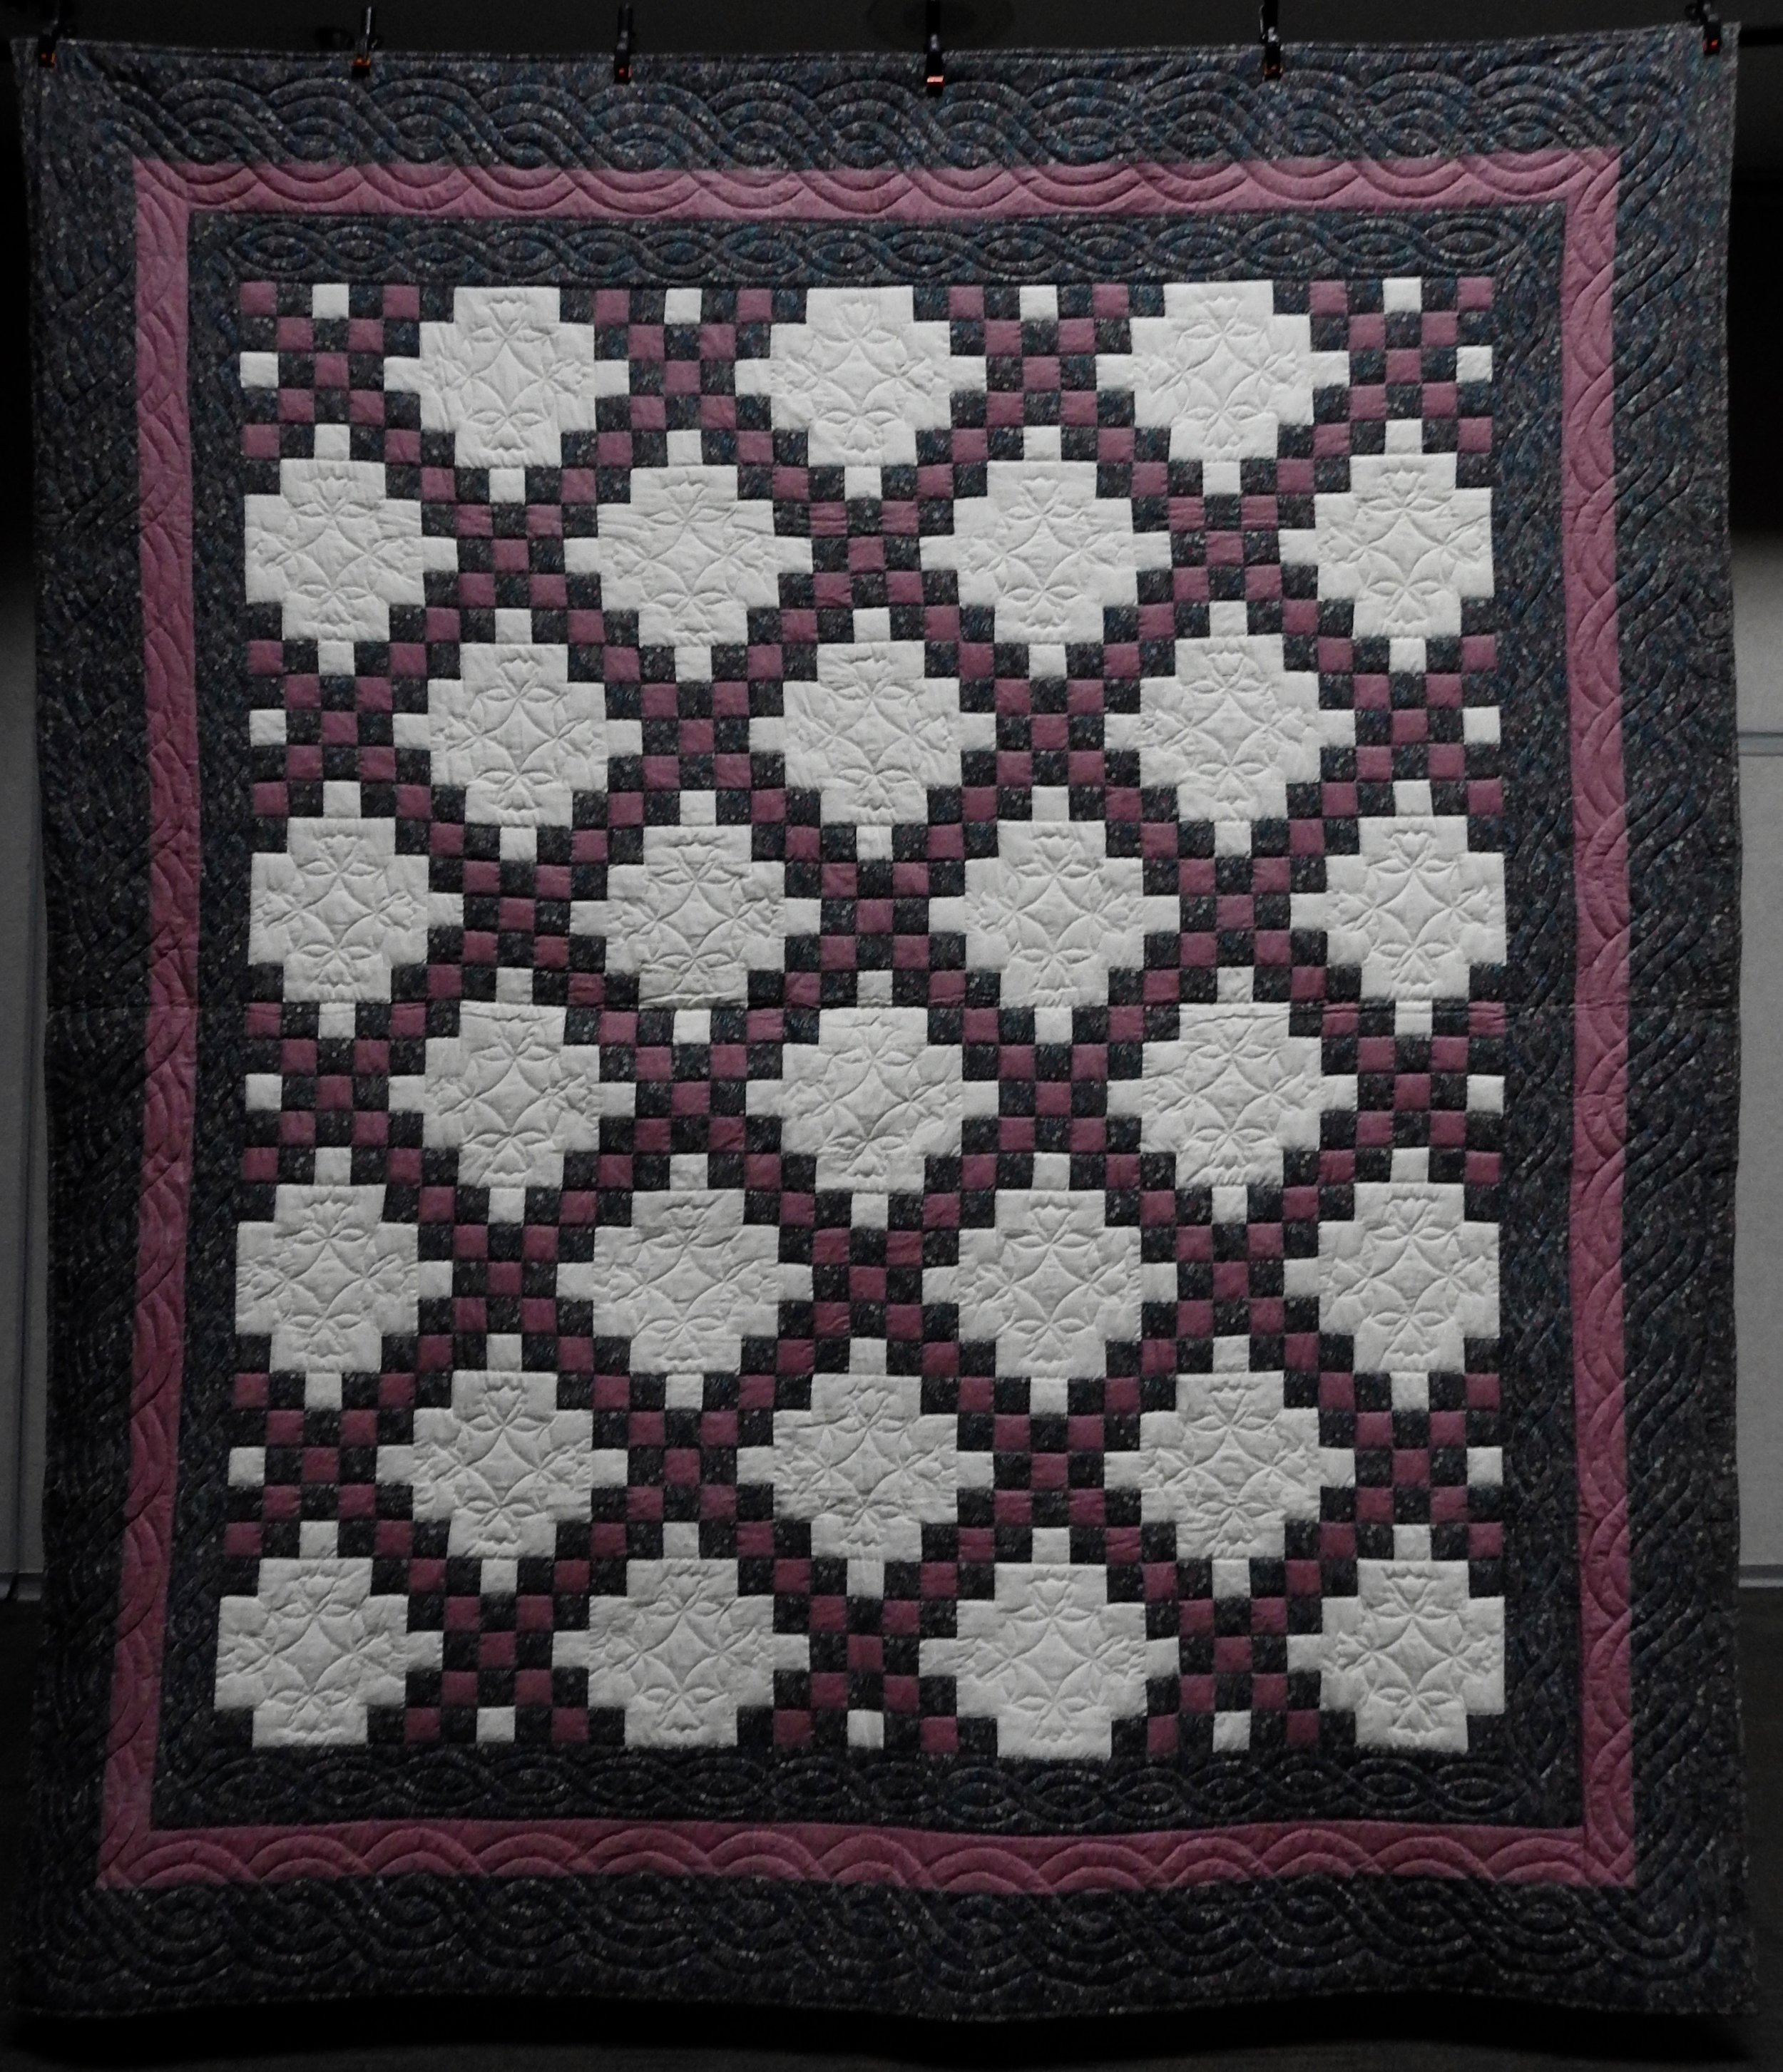 Double Irish Chain, Pieced  by L. Thomas, Hand Quilted, Signed & Dated, 93 x 106